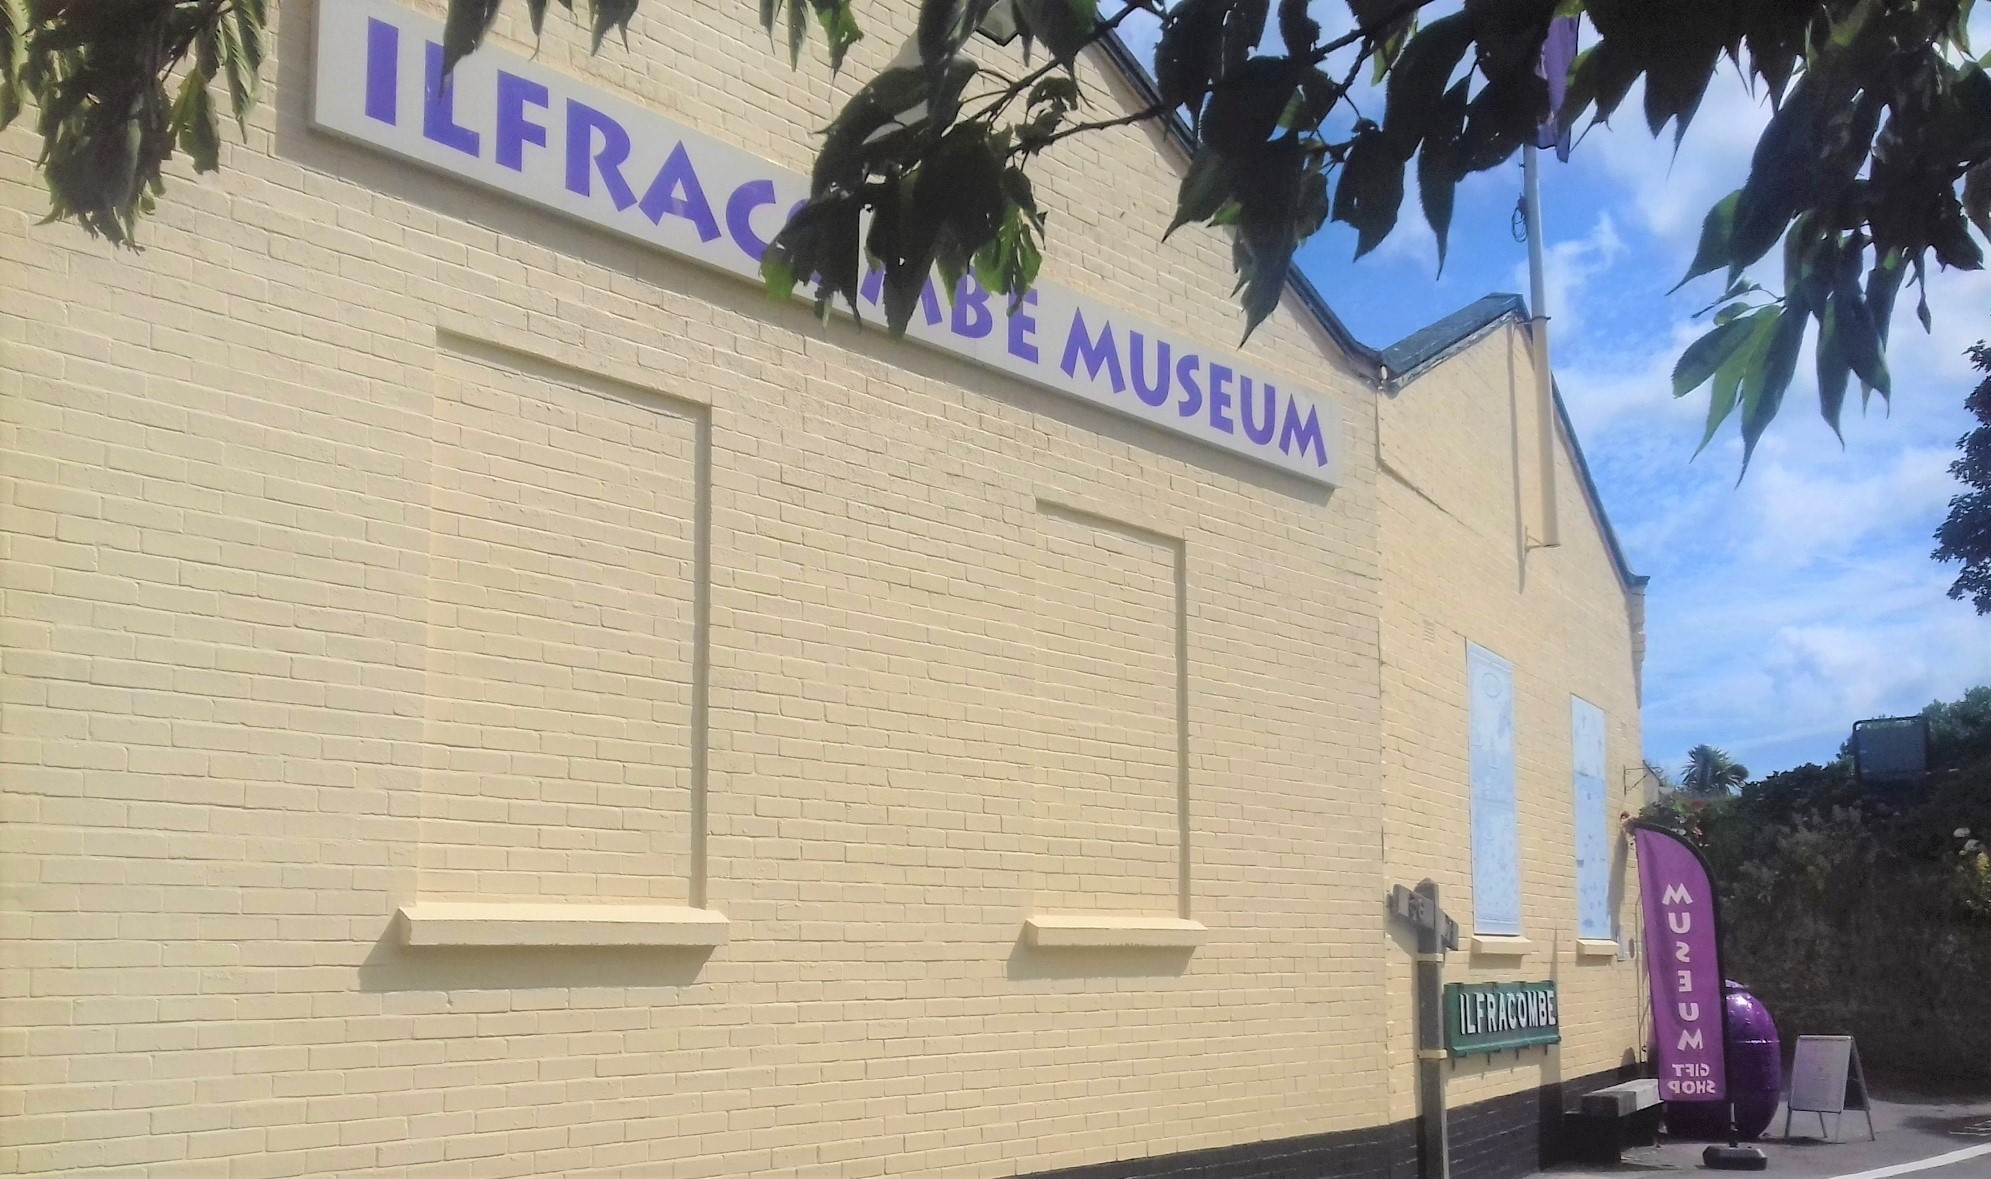 Ilfracombe Museum, formerly the Laundry of the iconic Ilfracombe Hotel